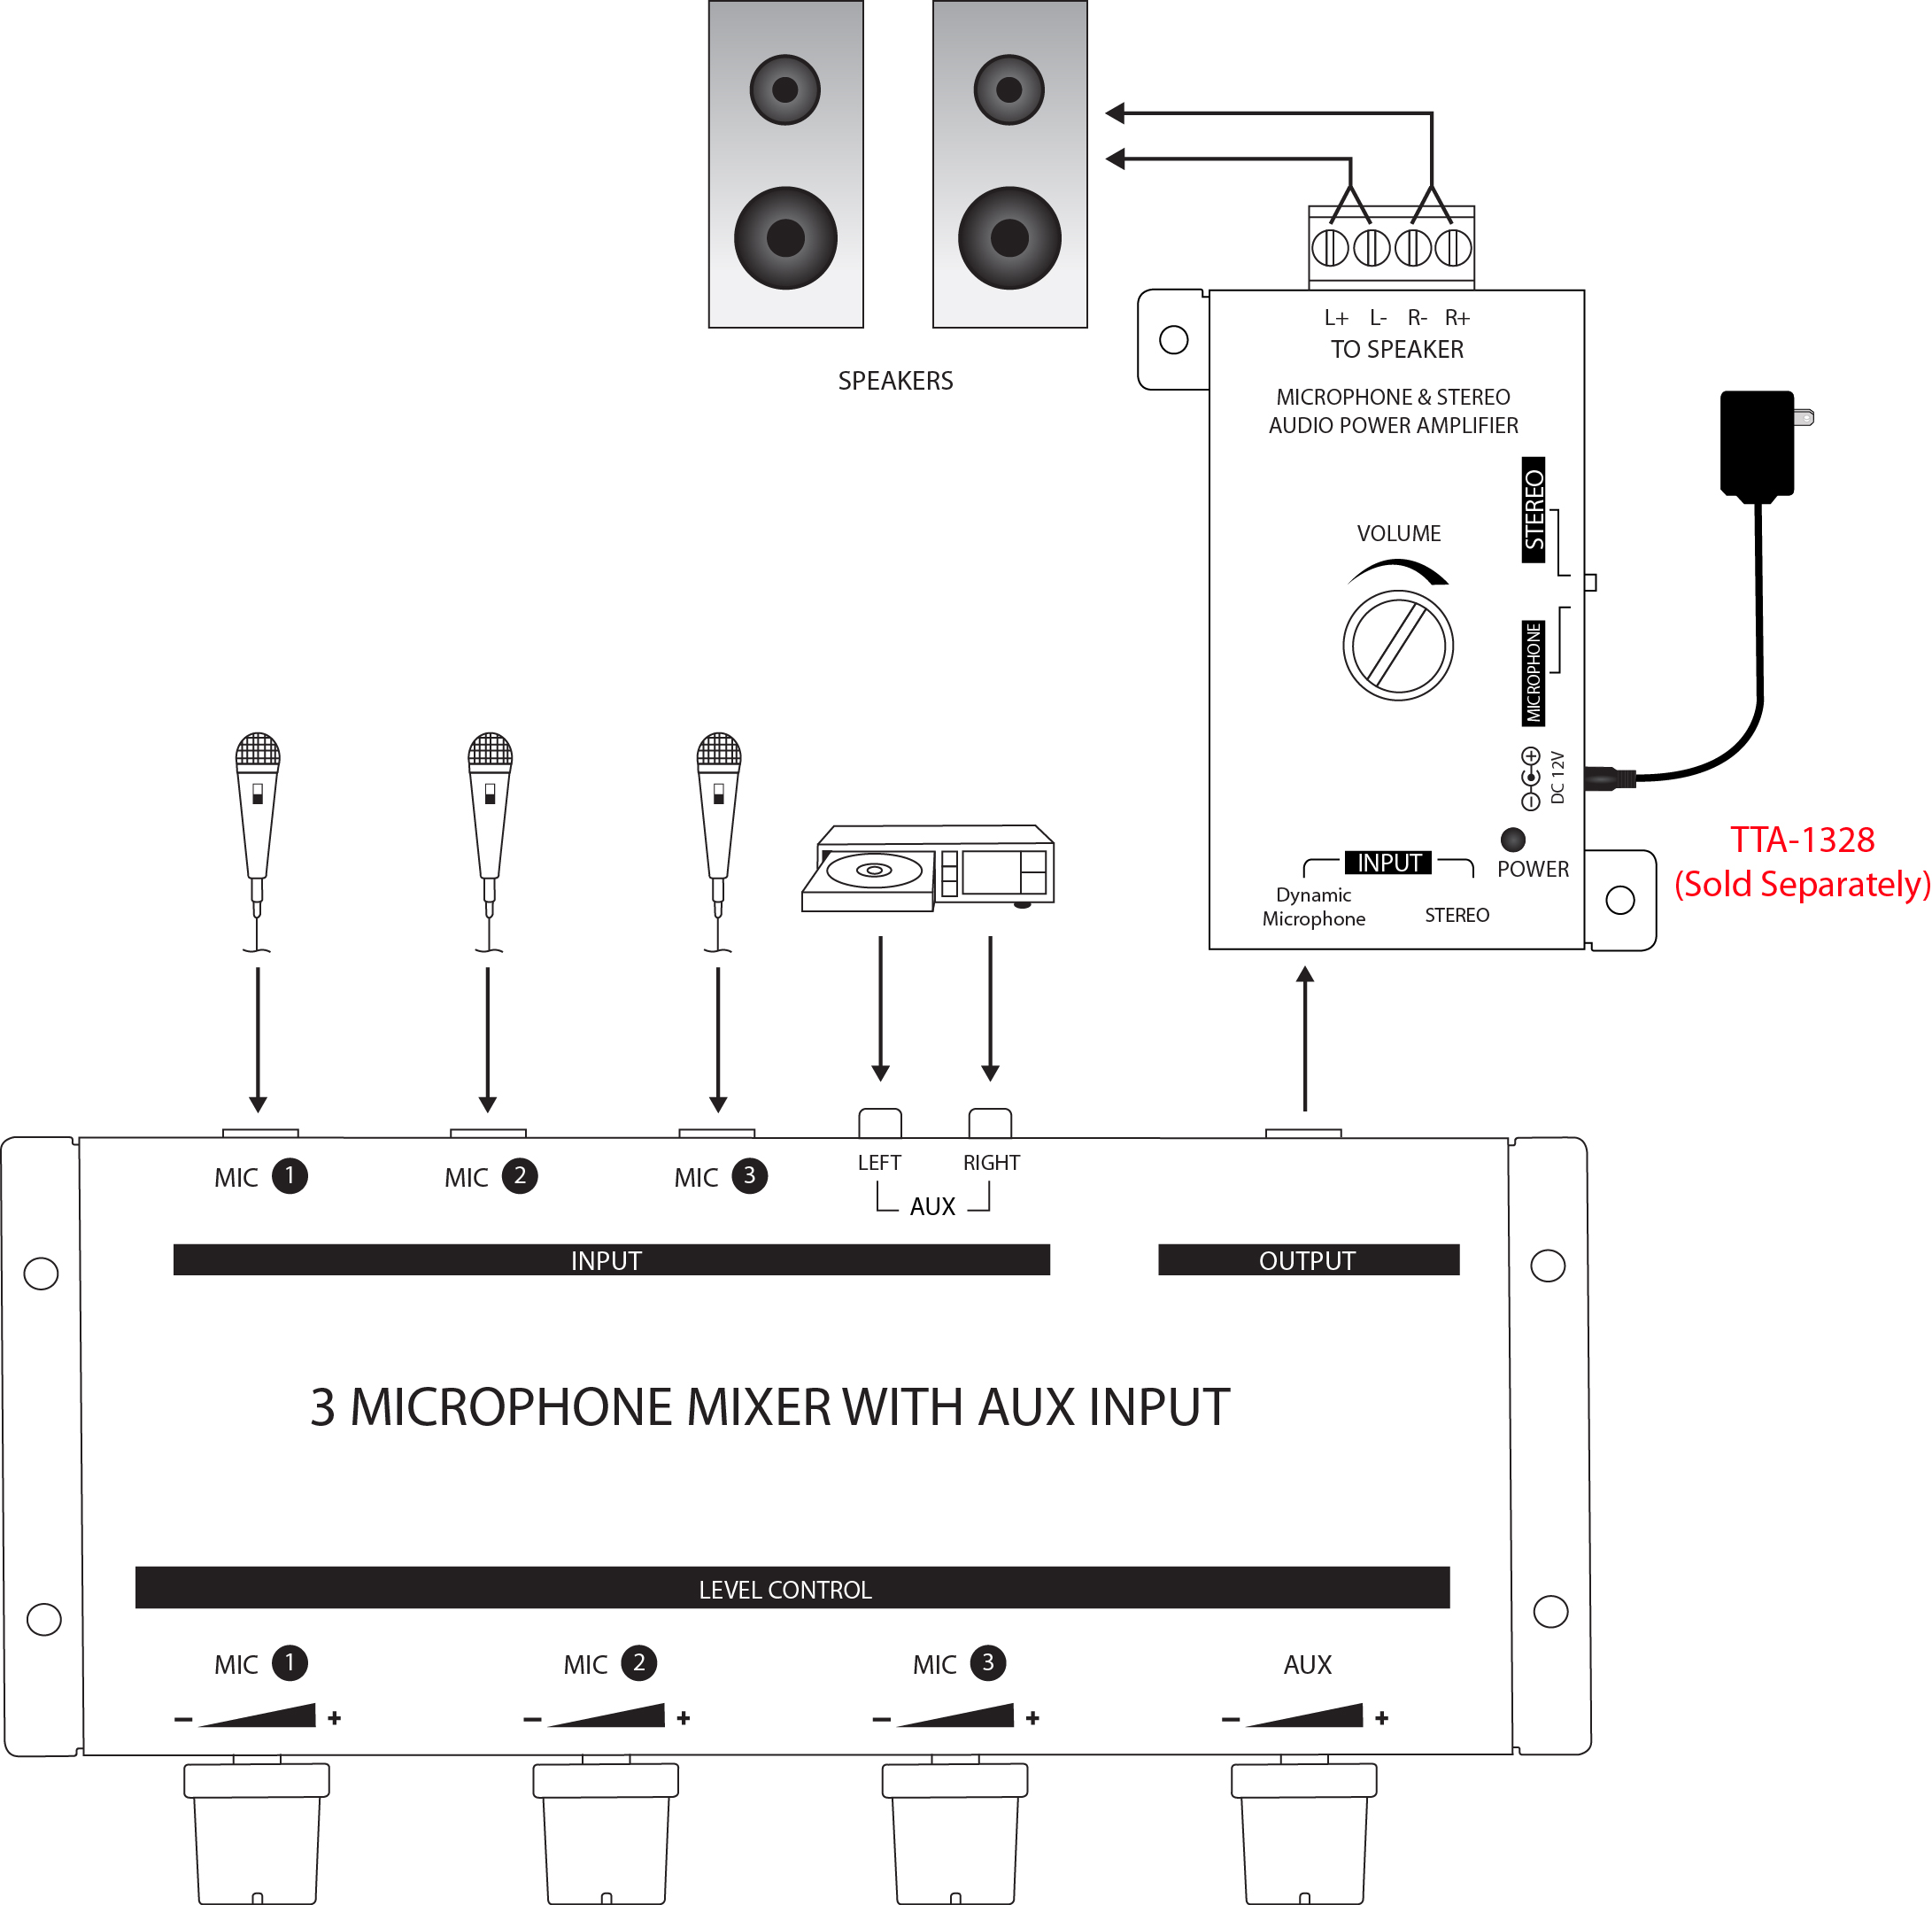 Passive 3 Microphone Mixer With Aux Input  Connect To Tta